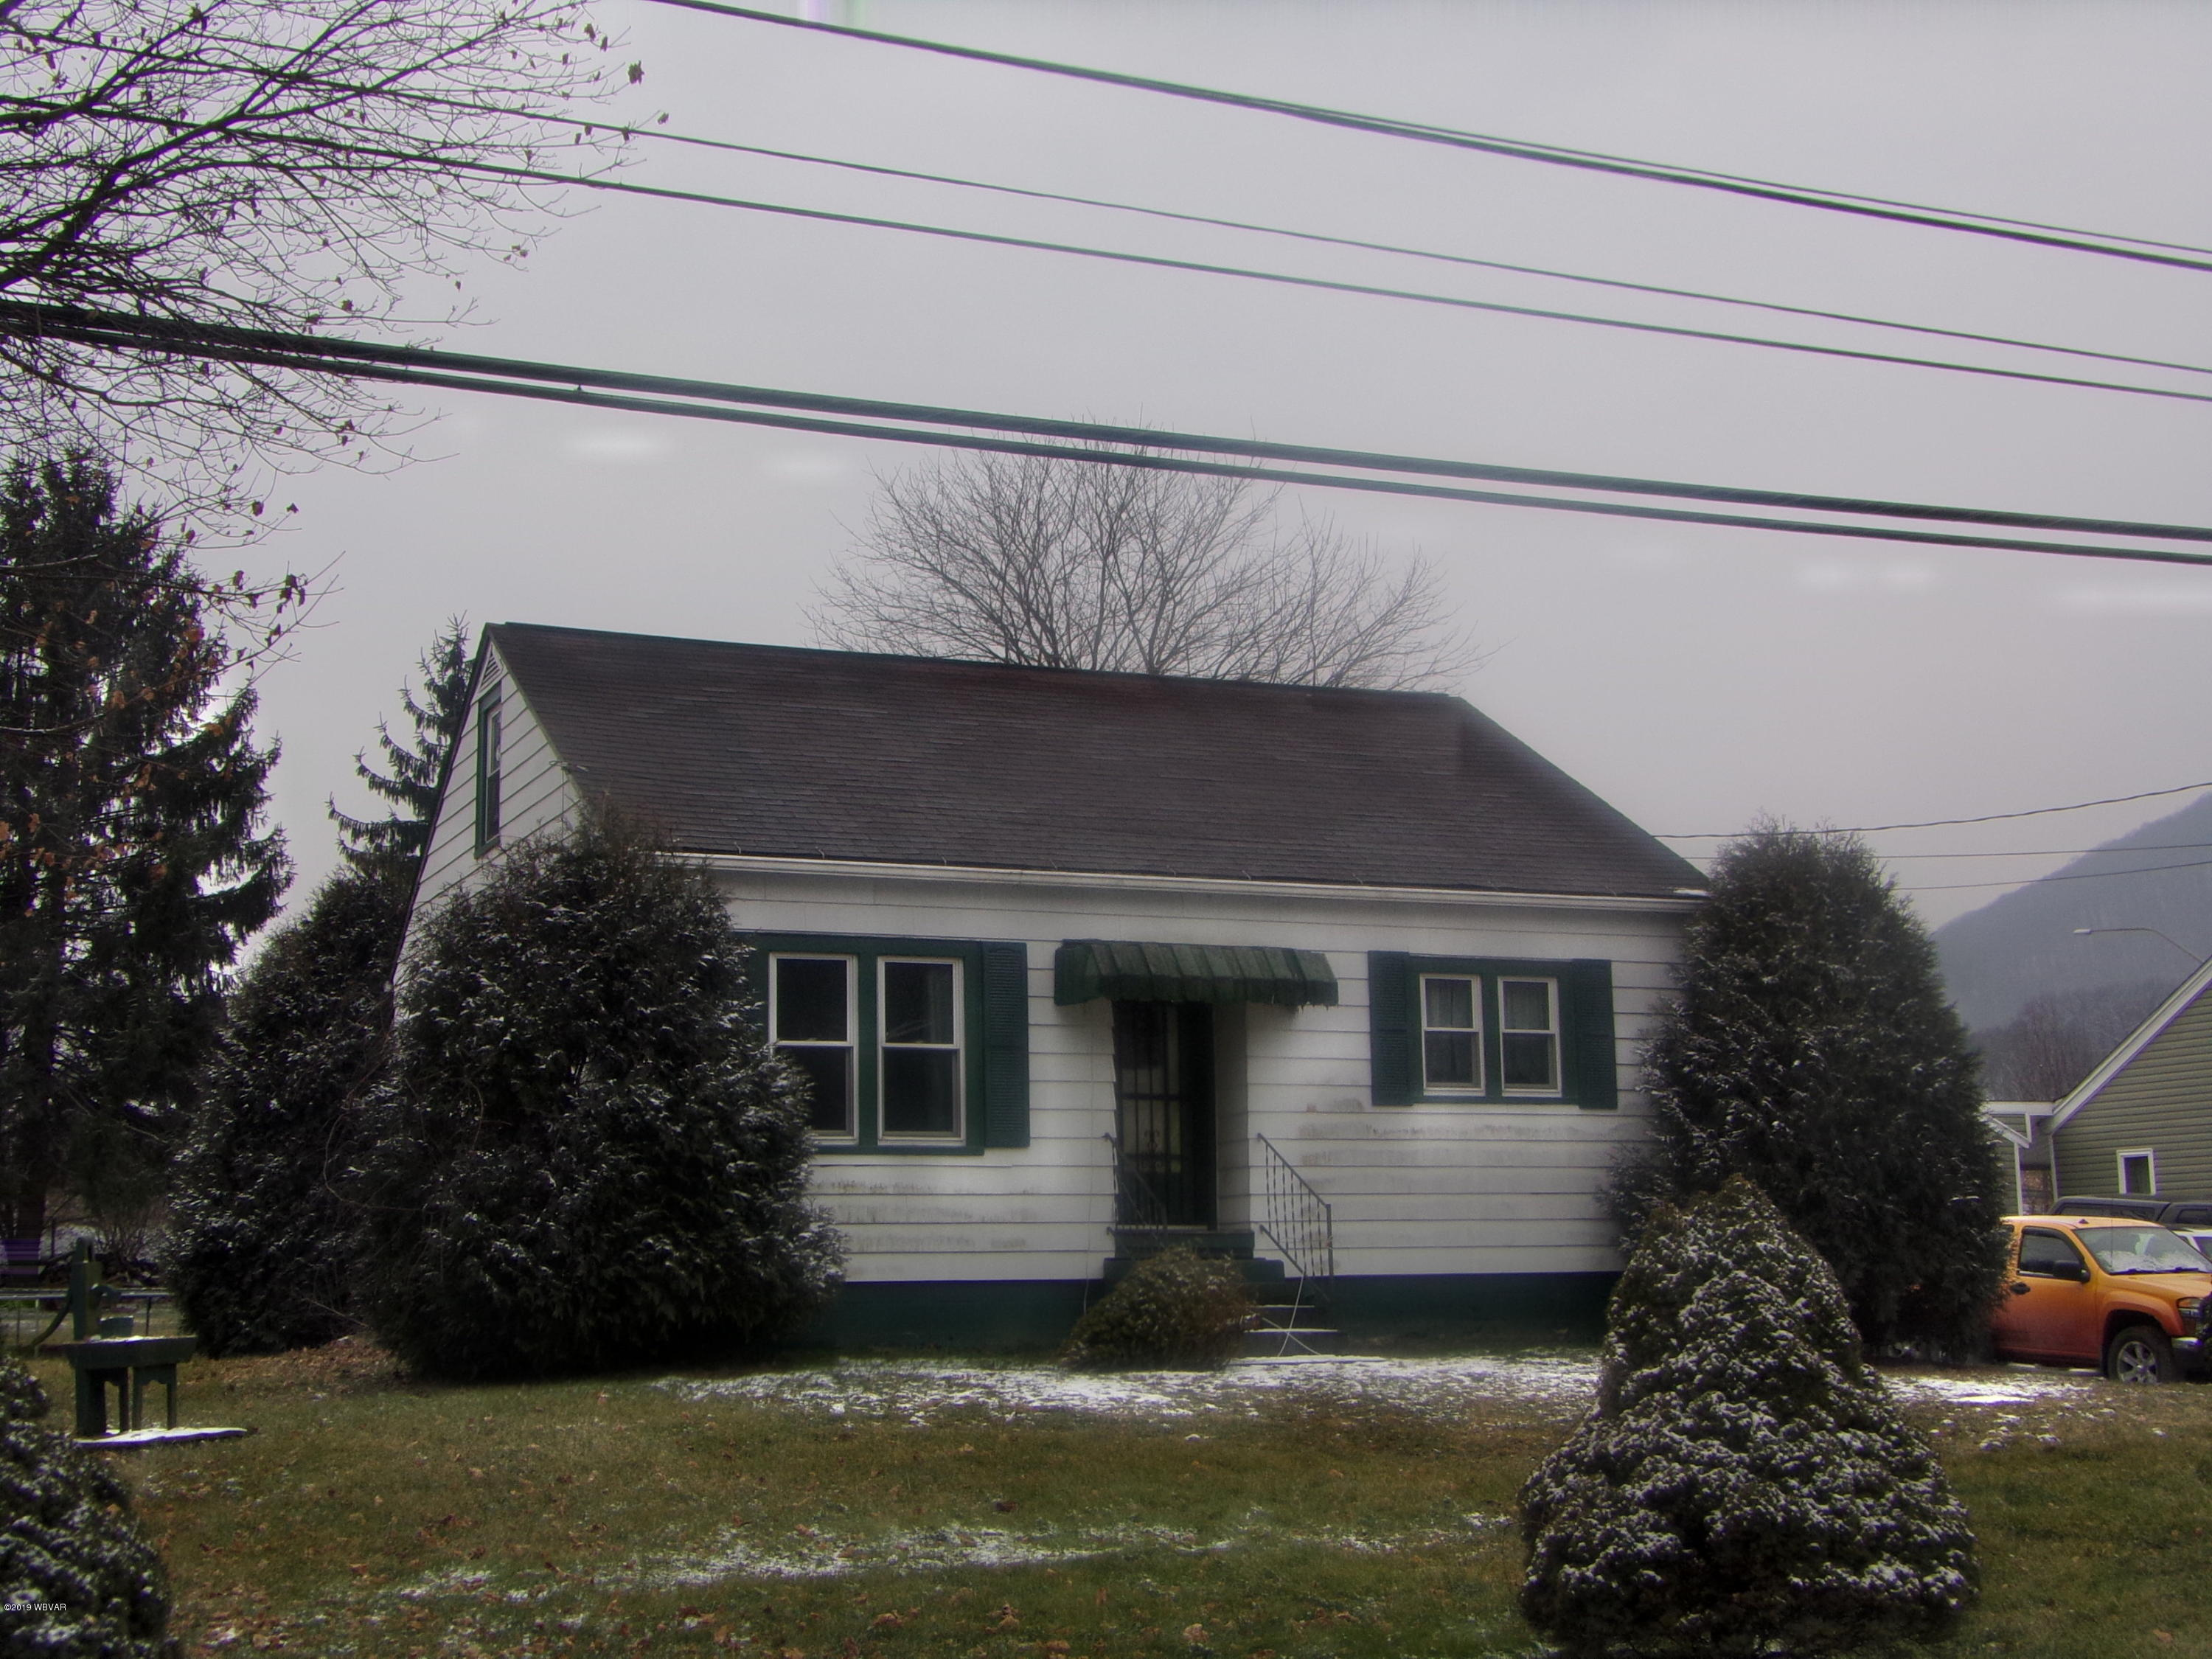 129 LIZARDVILLE ROAD,Mill Hall,PA 17751,3 Bedrooms Bedrooms,1 BathroomBathrooms,Residential,LIZARDVILLE,WB-86304